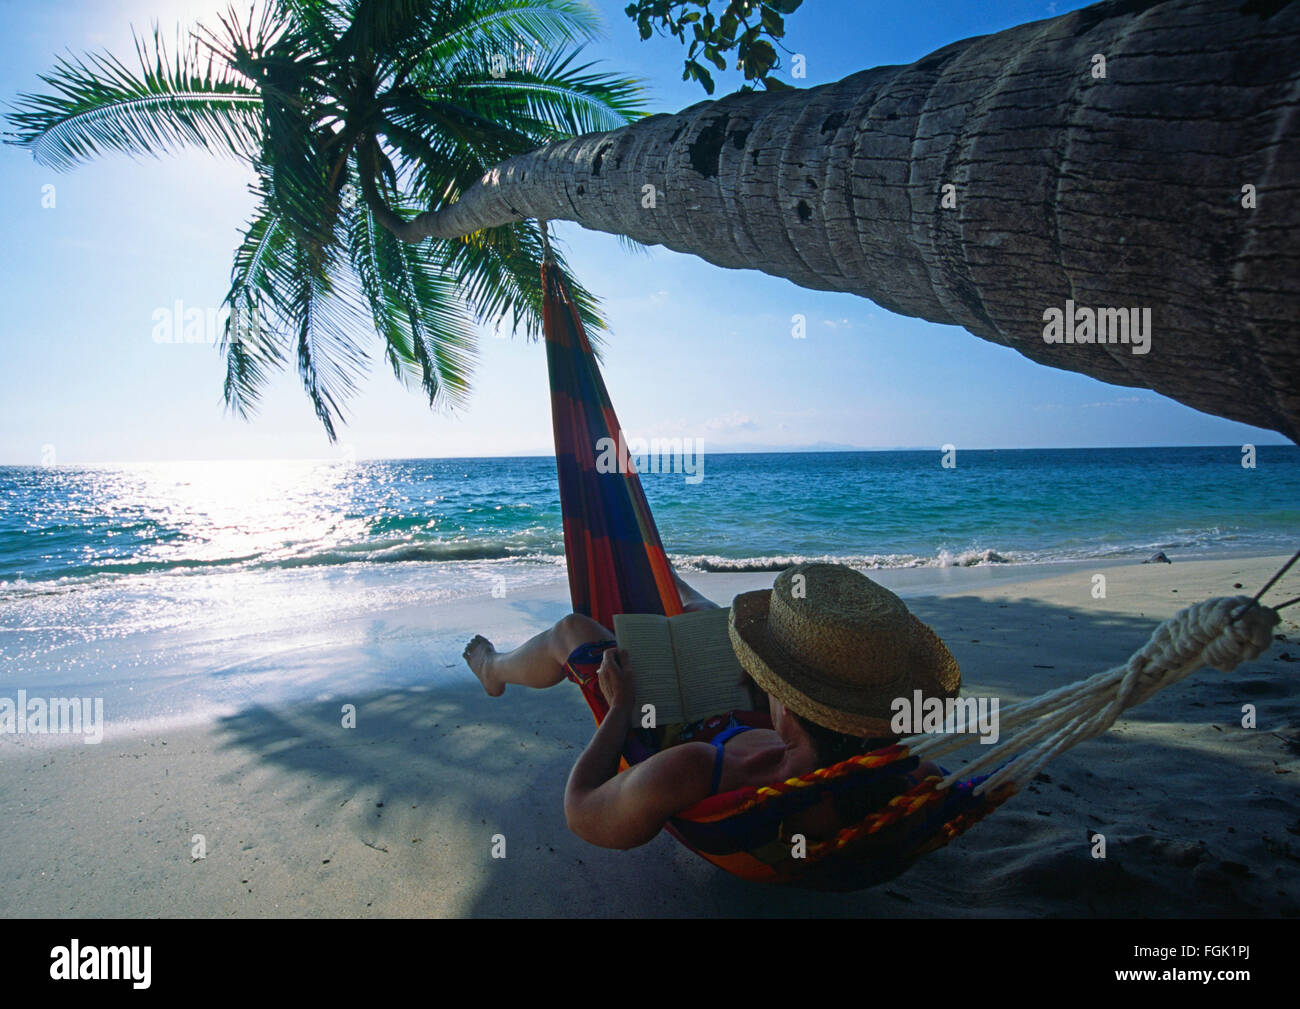 a woman in a hammock reading a book under a coconut palm tree bent over the water on a beach on the Pacific Coast - Stock Image